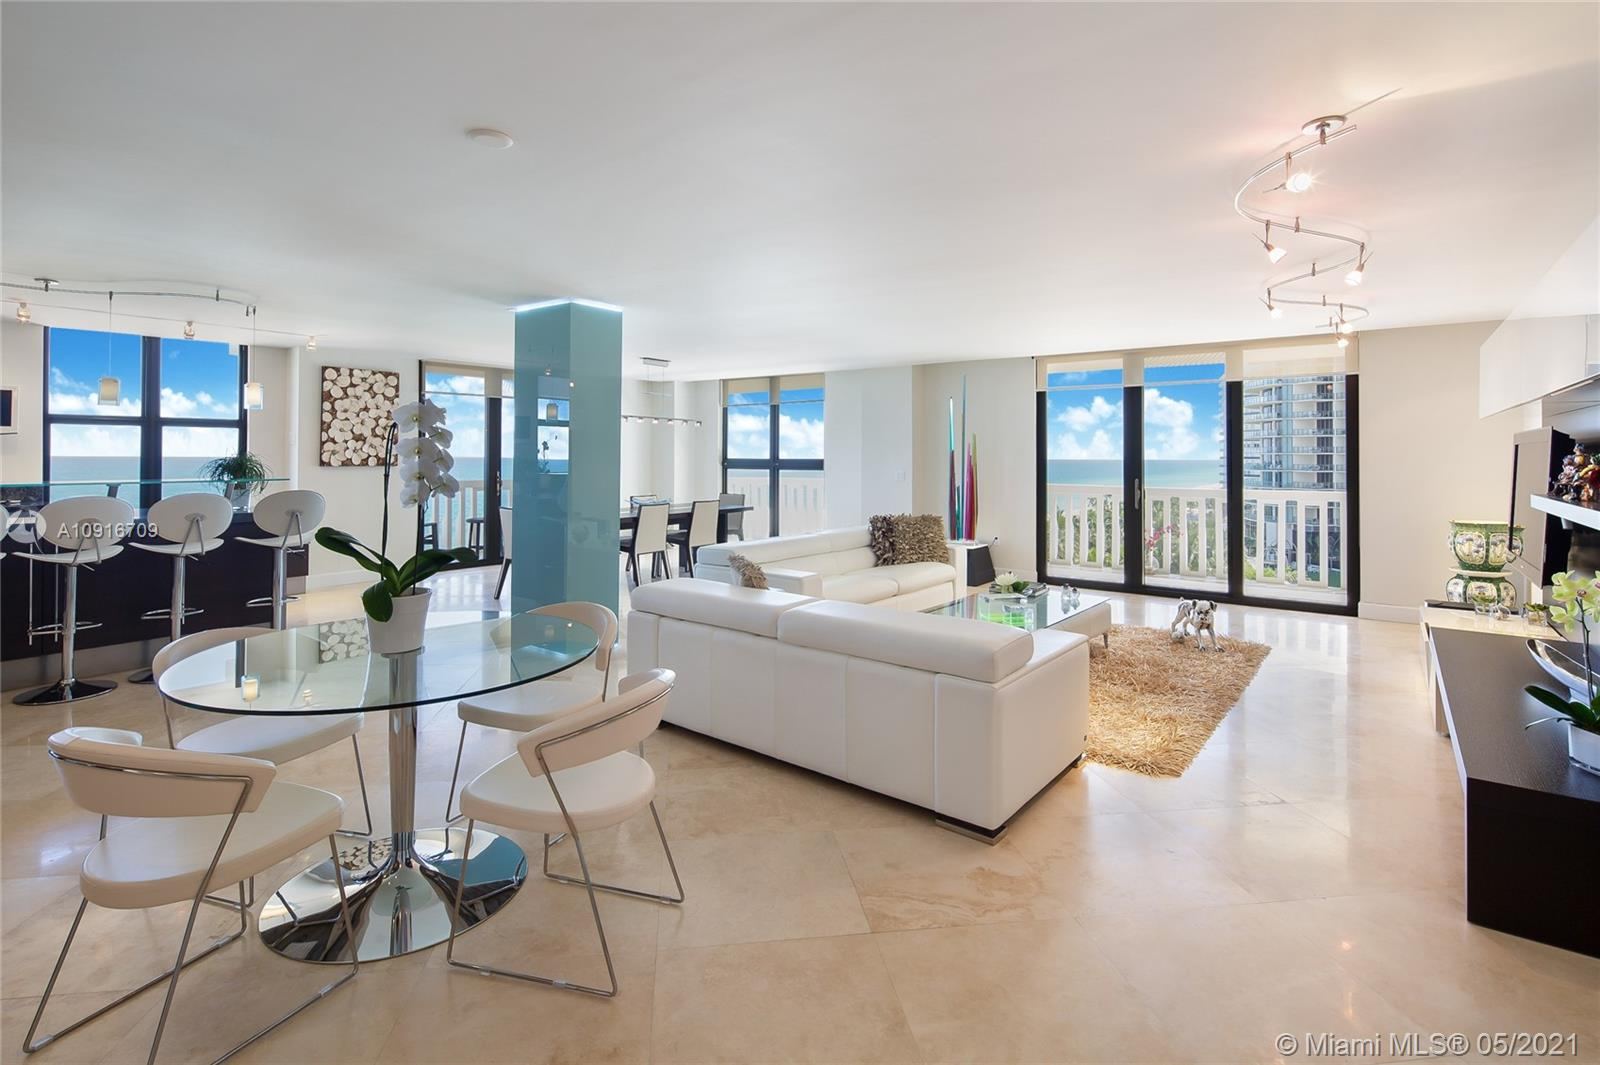 Photo of 9801 Collins Ave #11B Direct Ocean, Bal Harbour, Florida, 33154 - Looking East